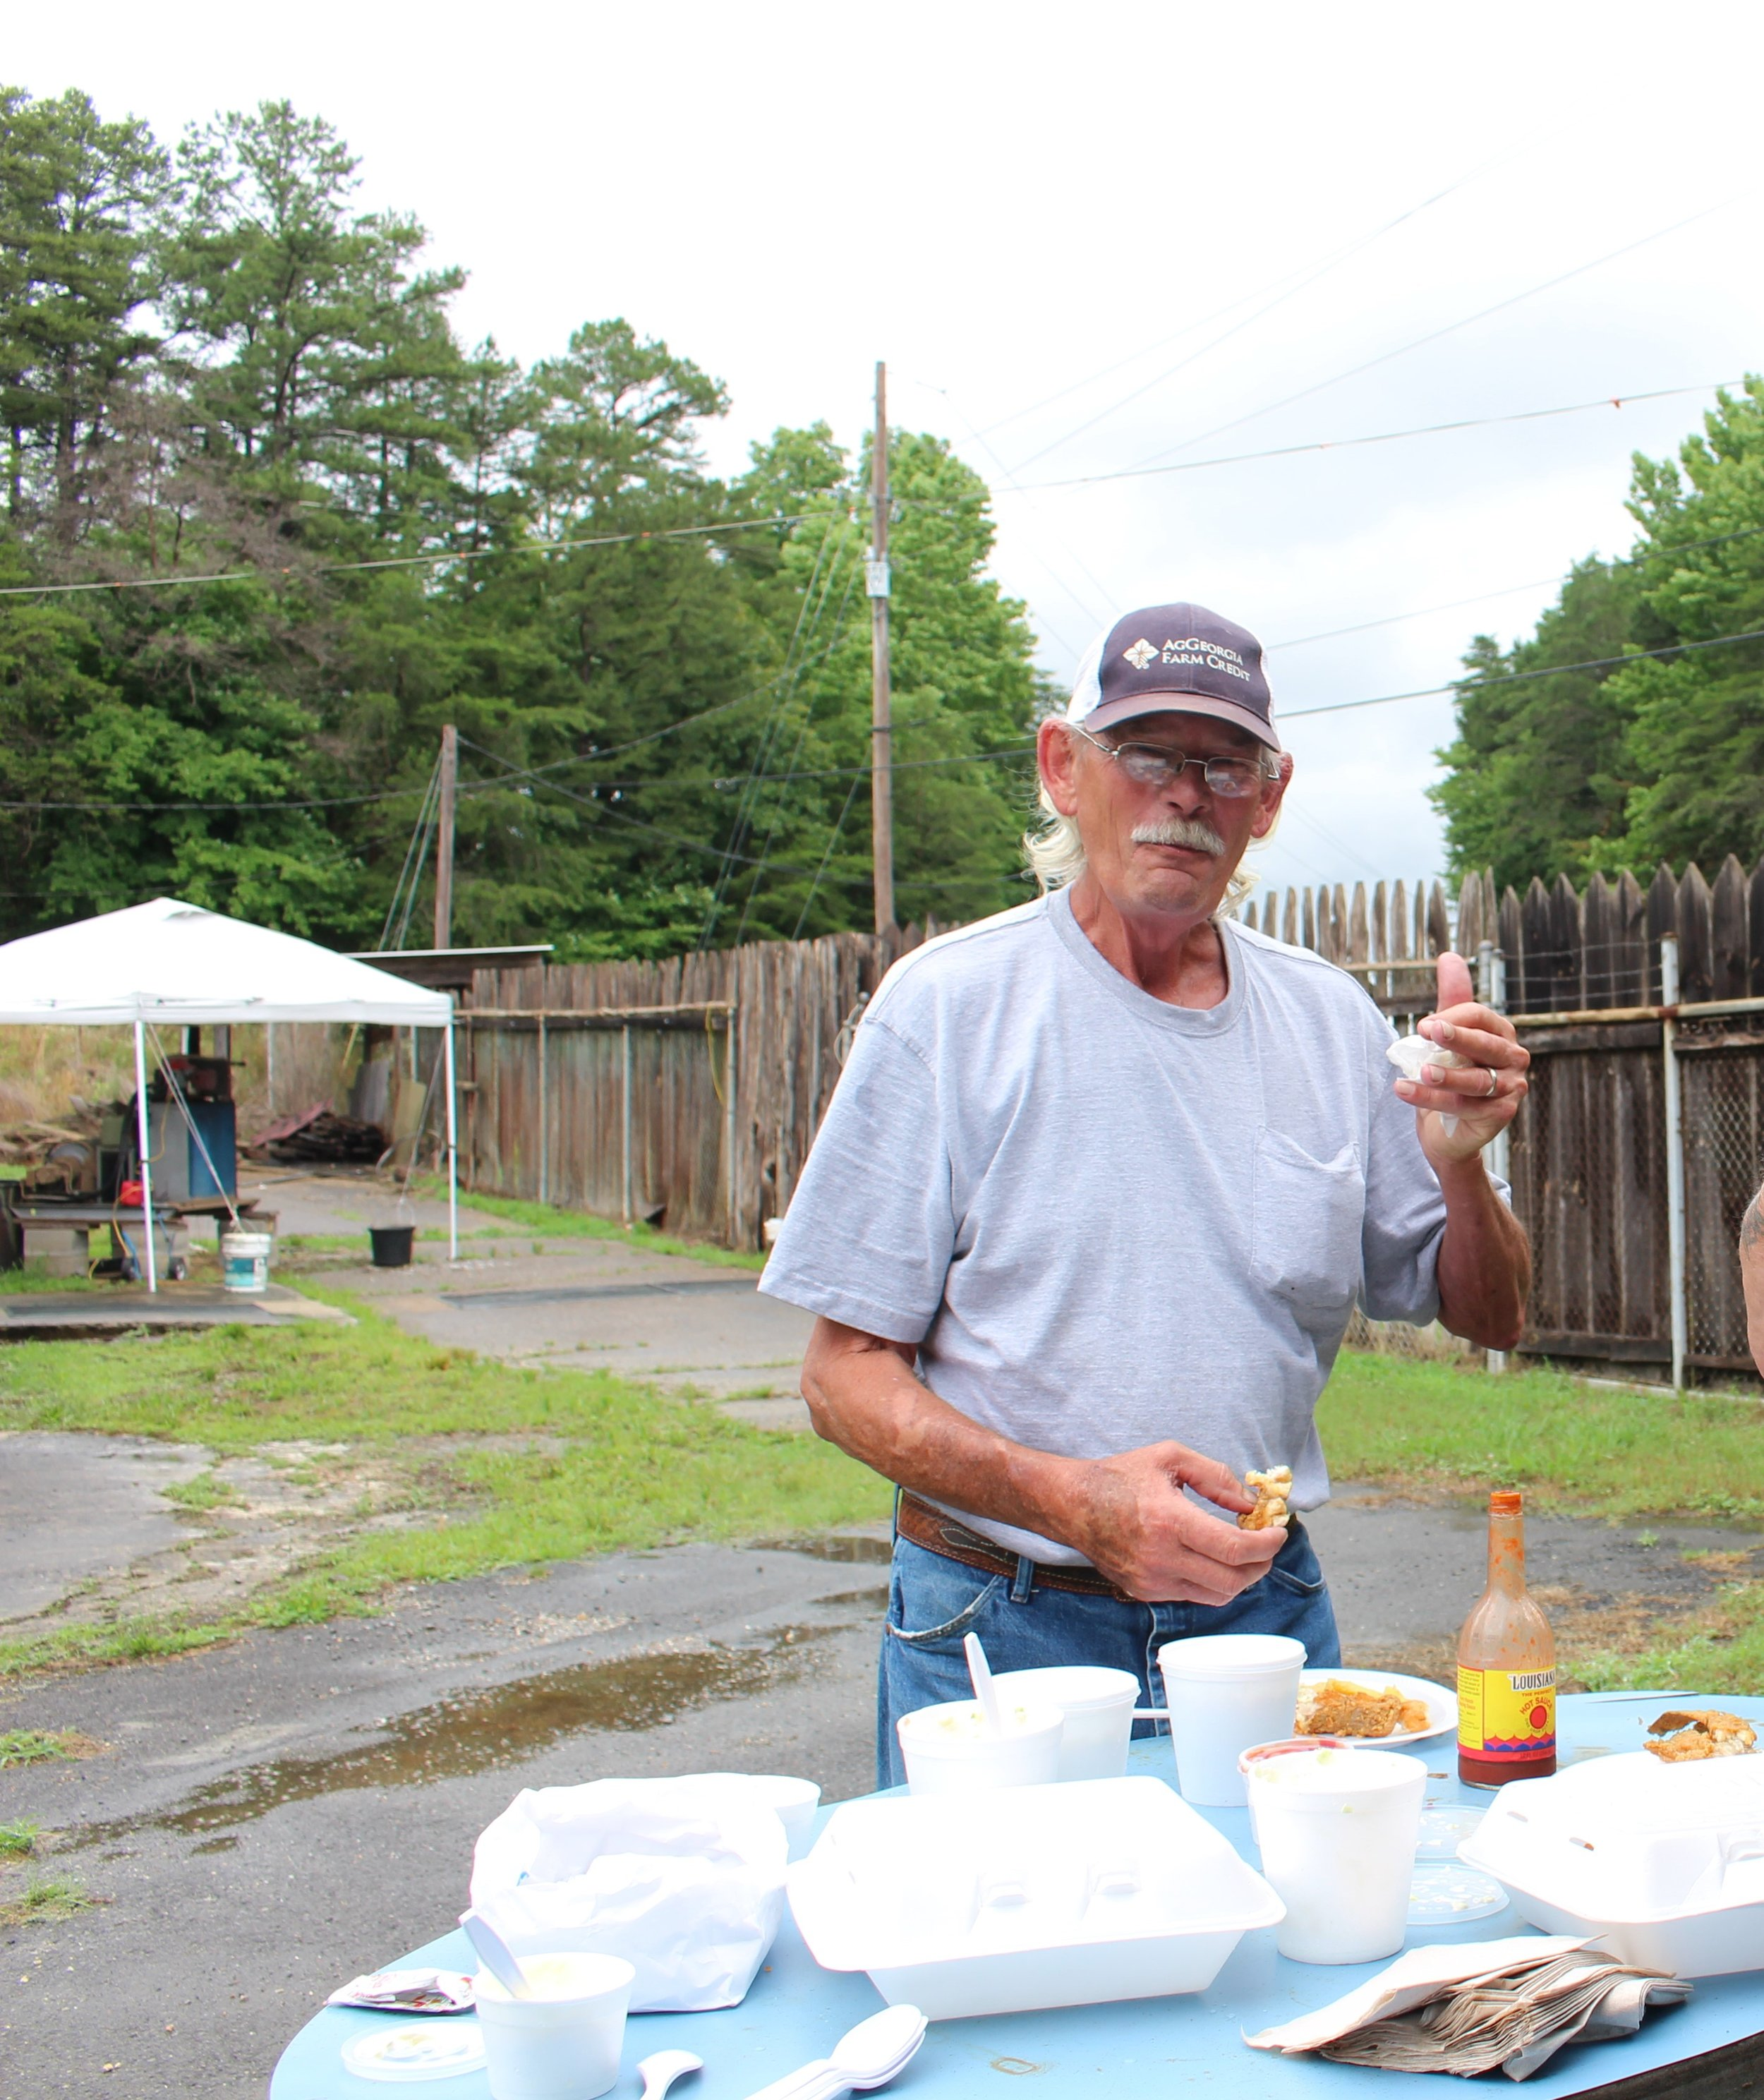 Bennie provided the fishing pond and catfish for our Fish Fry.jpg